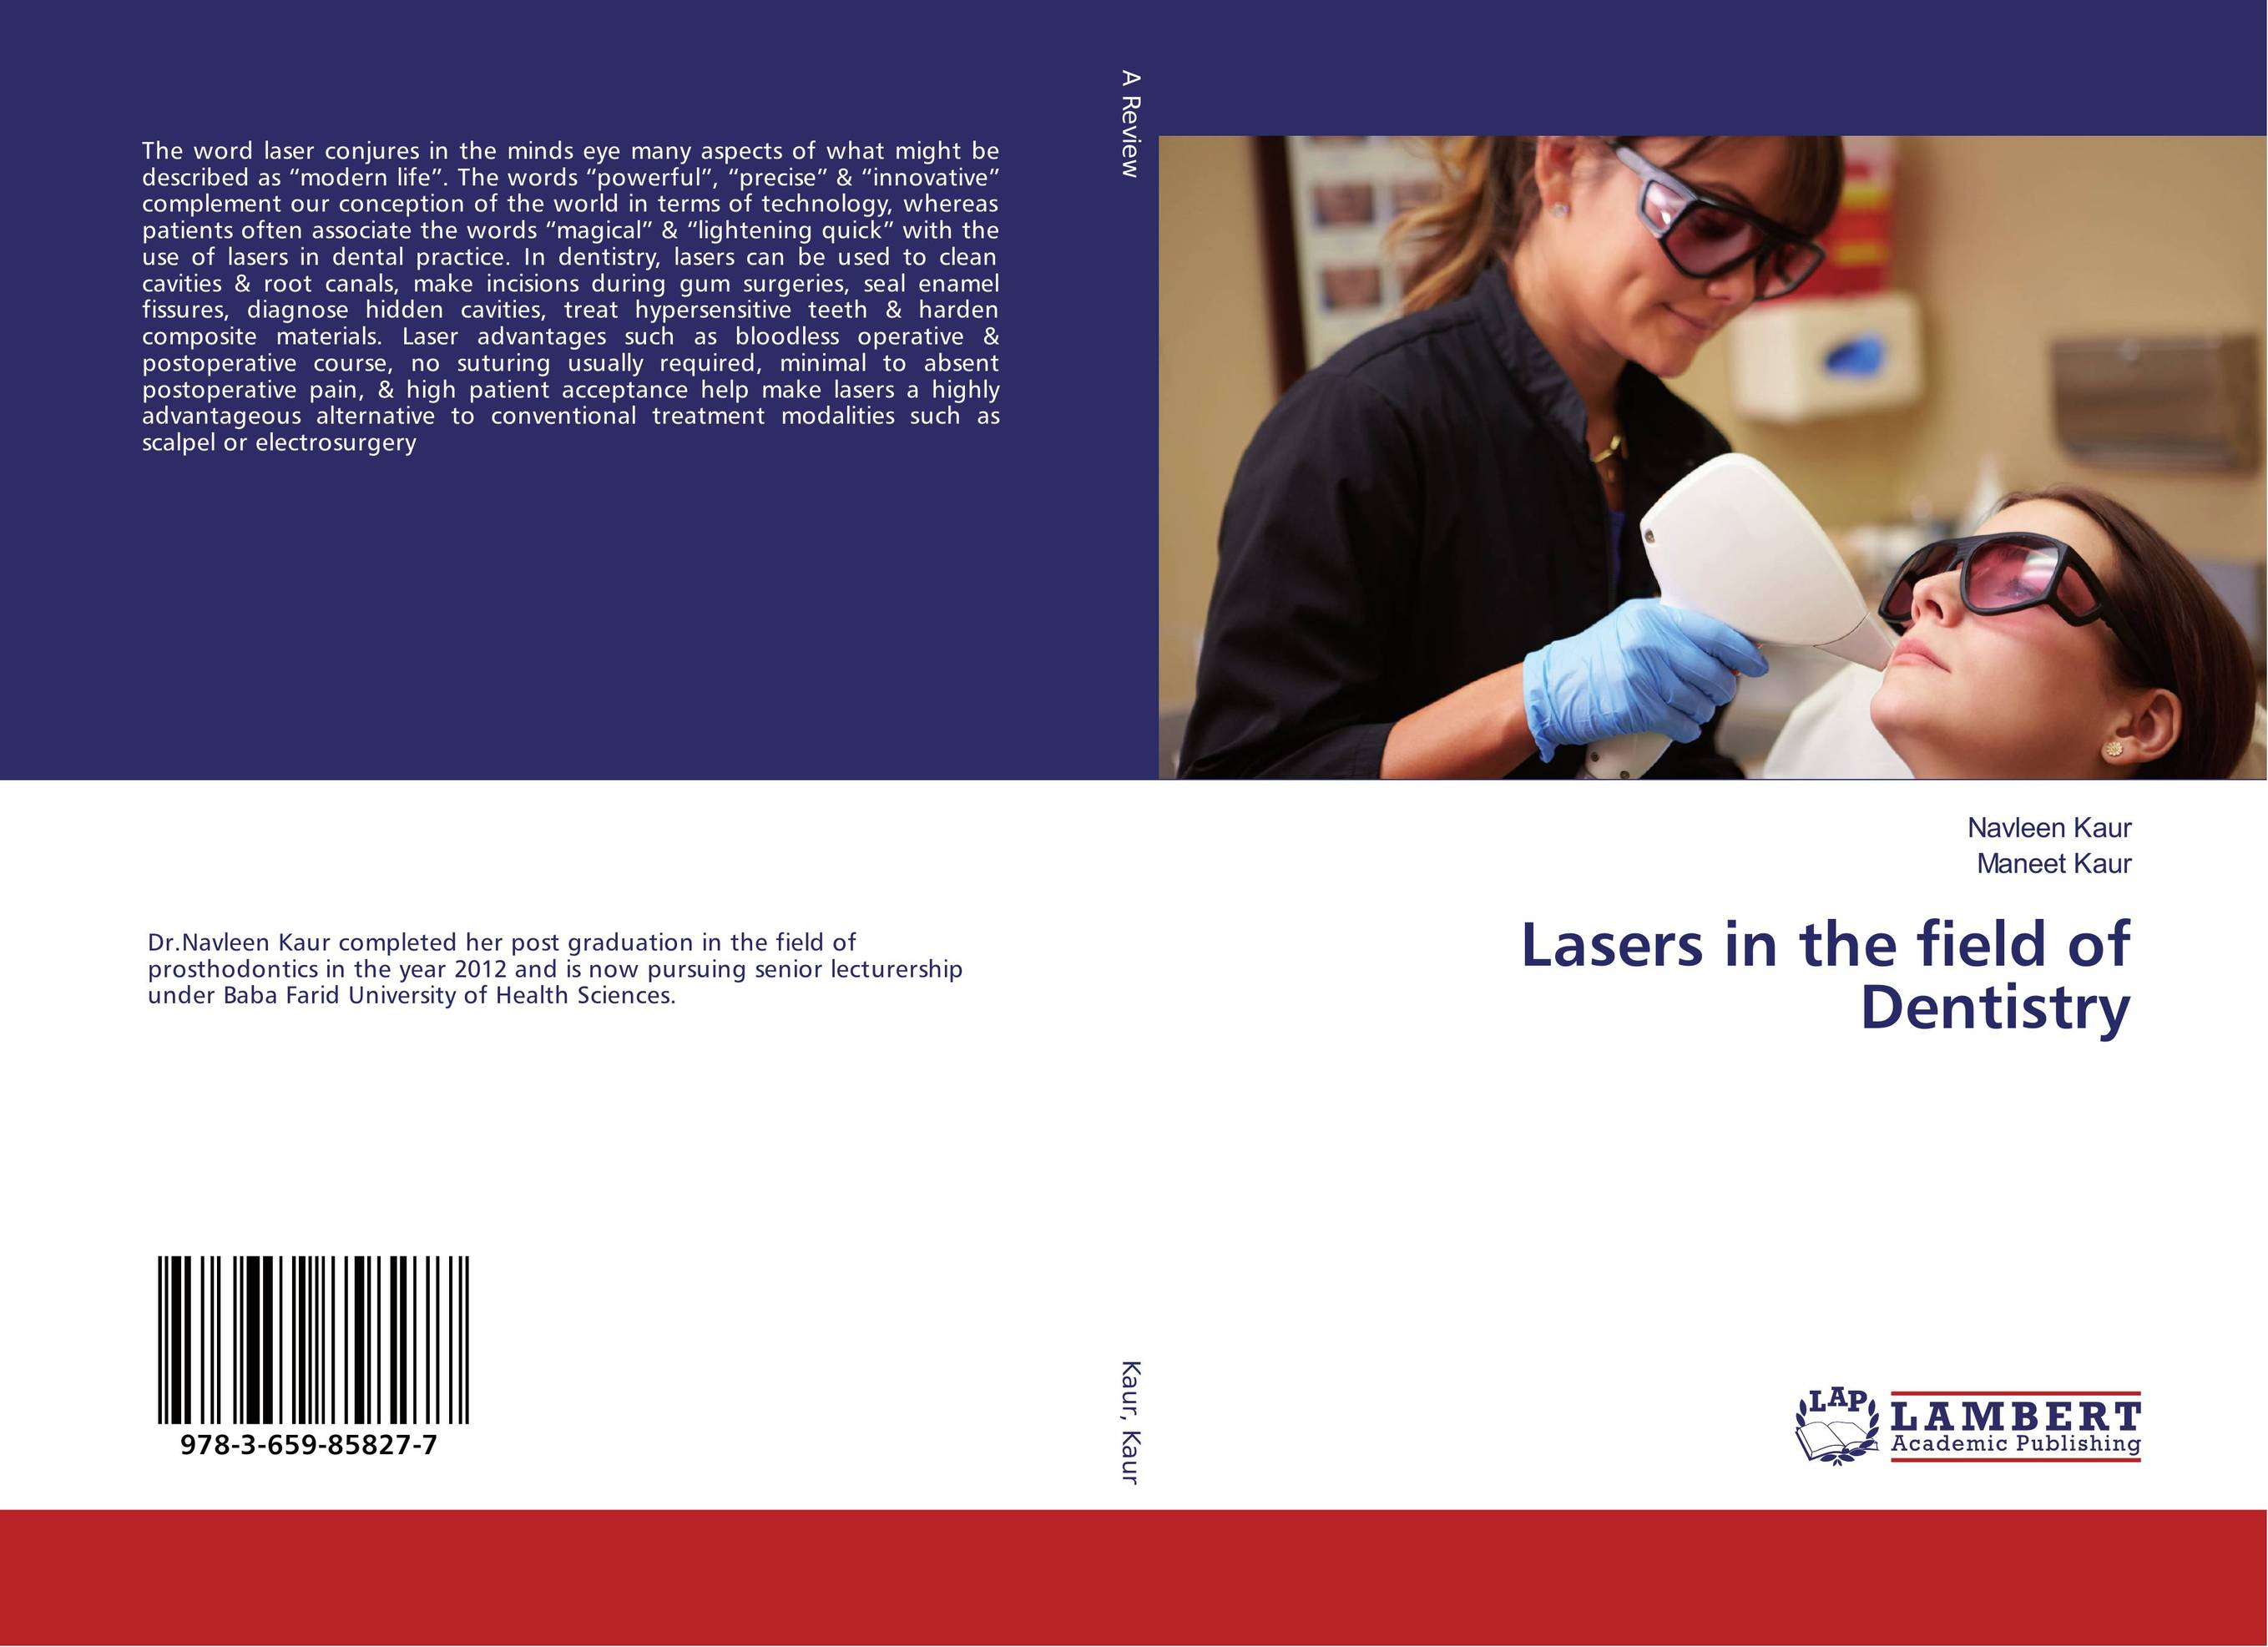 Lasers in the field of Dentistry lasers in the field of dentistry